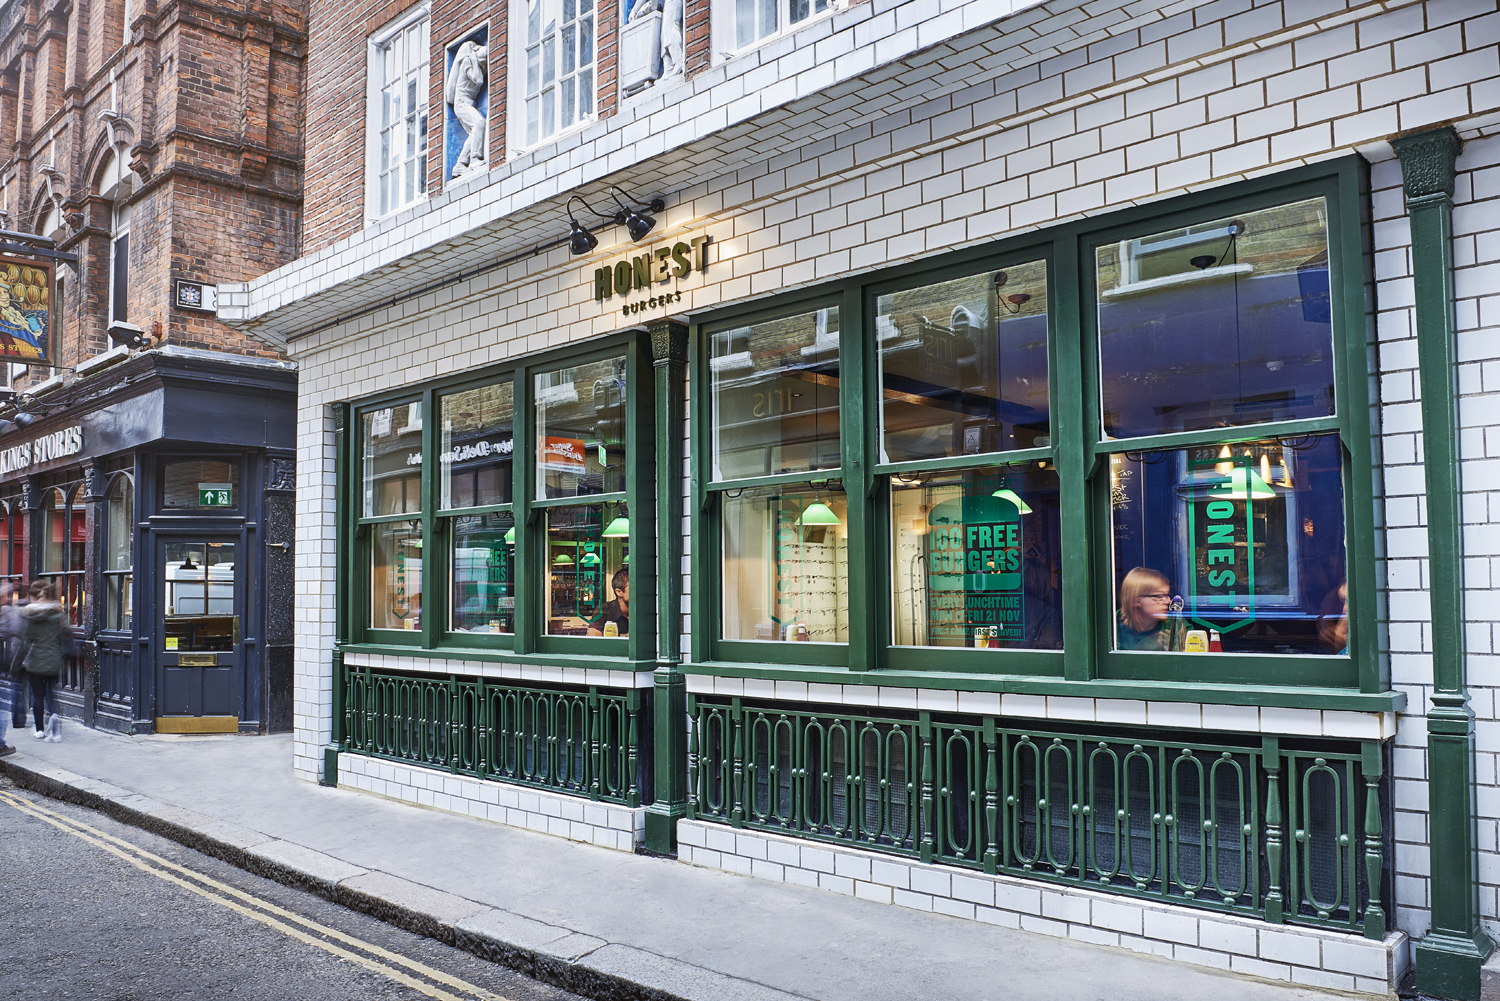 The Brand New Honest Burgers location in Liverpool Street London. Image by Food photographer and director Scott Grummett